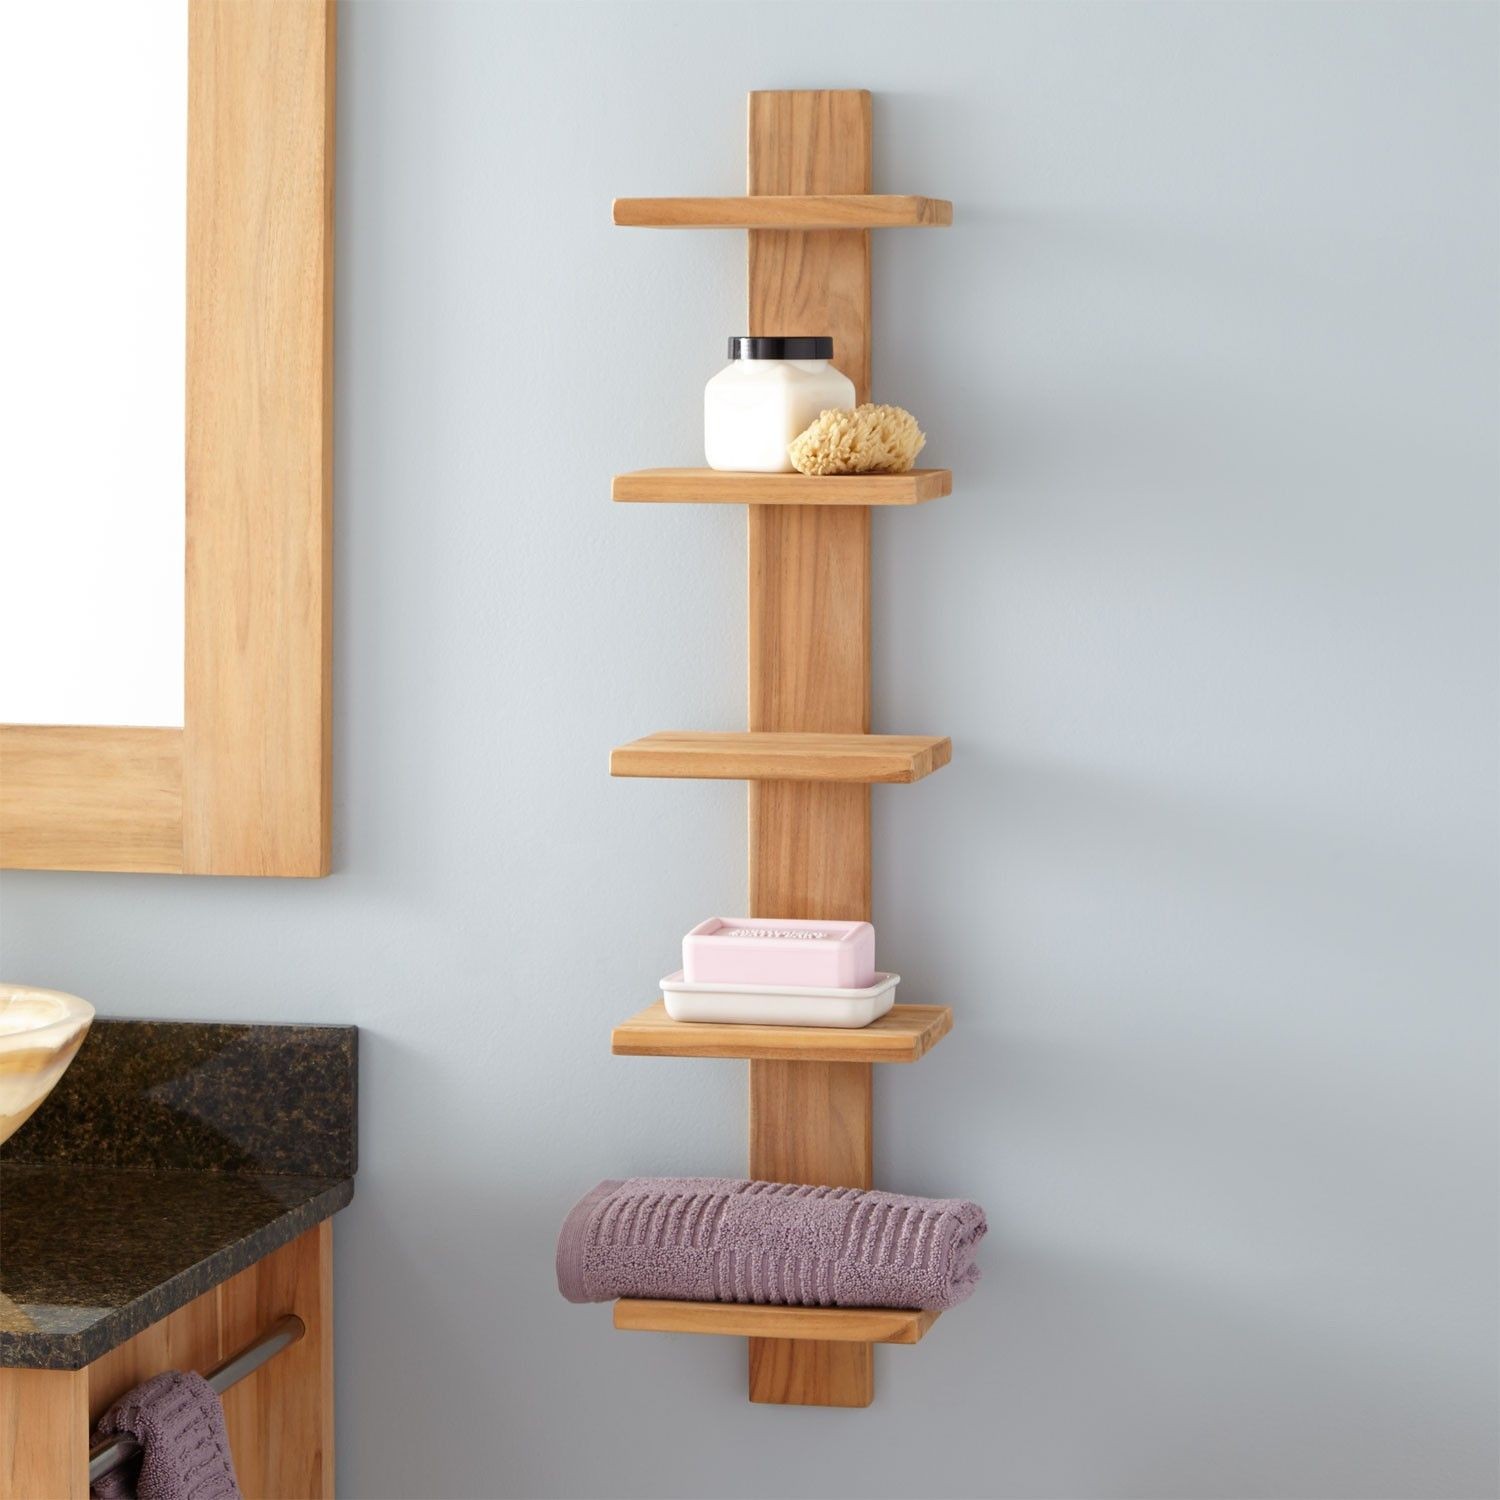 Bastian Hanging Bathroom Teak Shelf Five Shelves Bathroom Diy Wooden Shelves Teak Bathroom Bathroom Wall Shelves